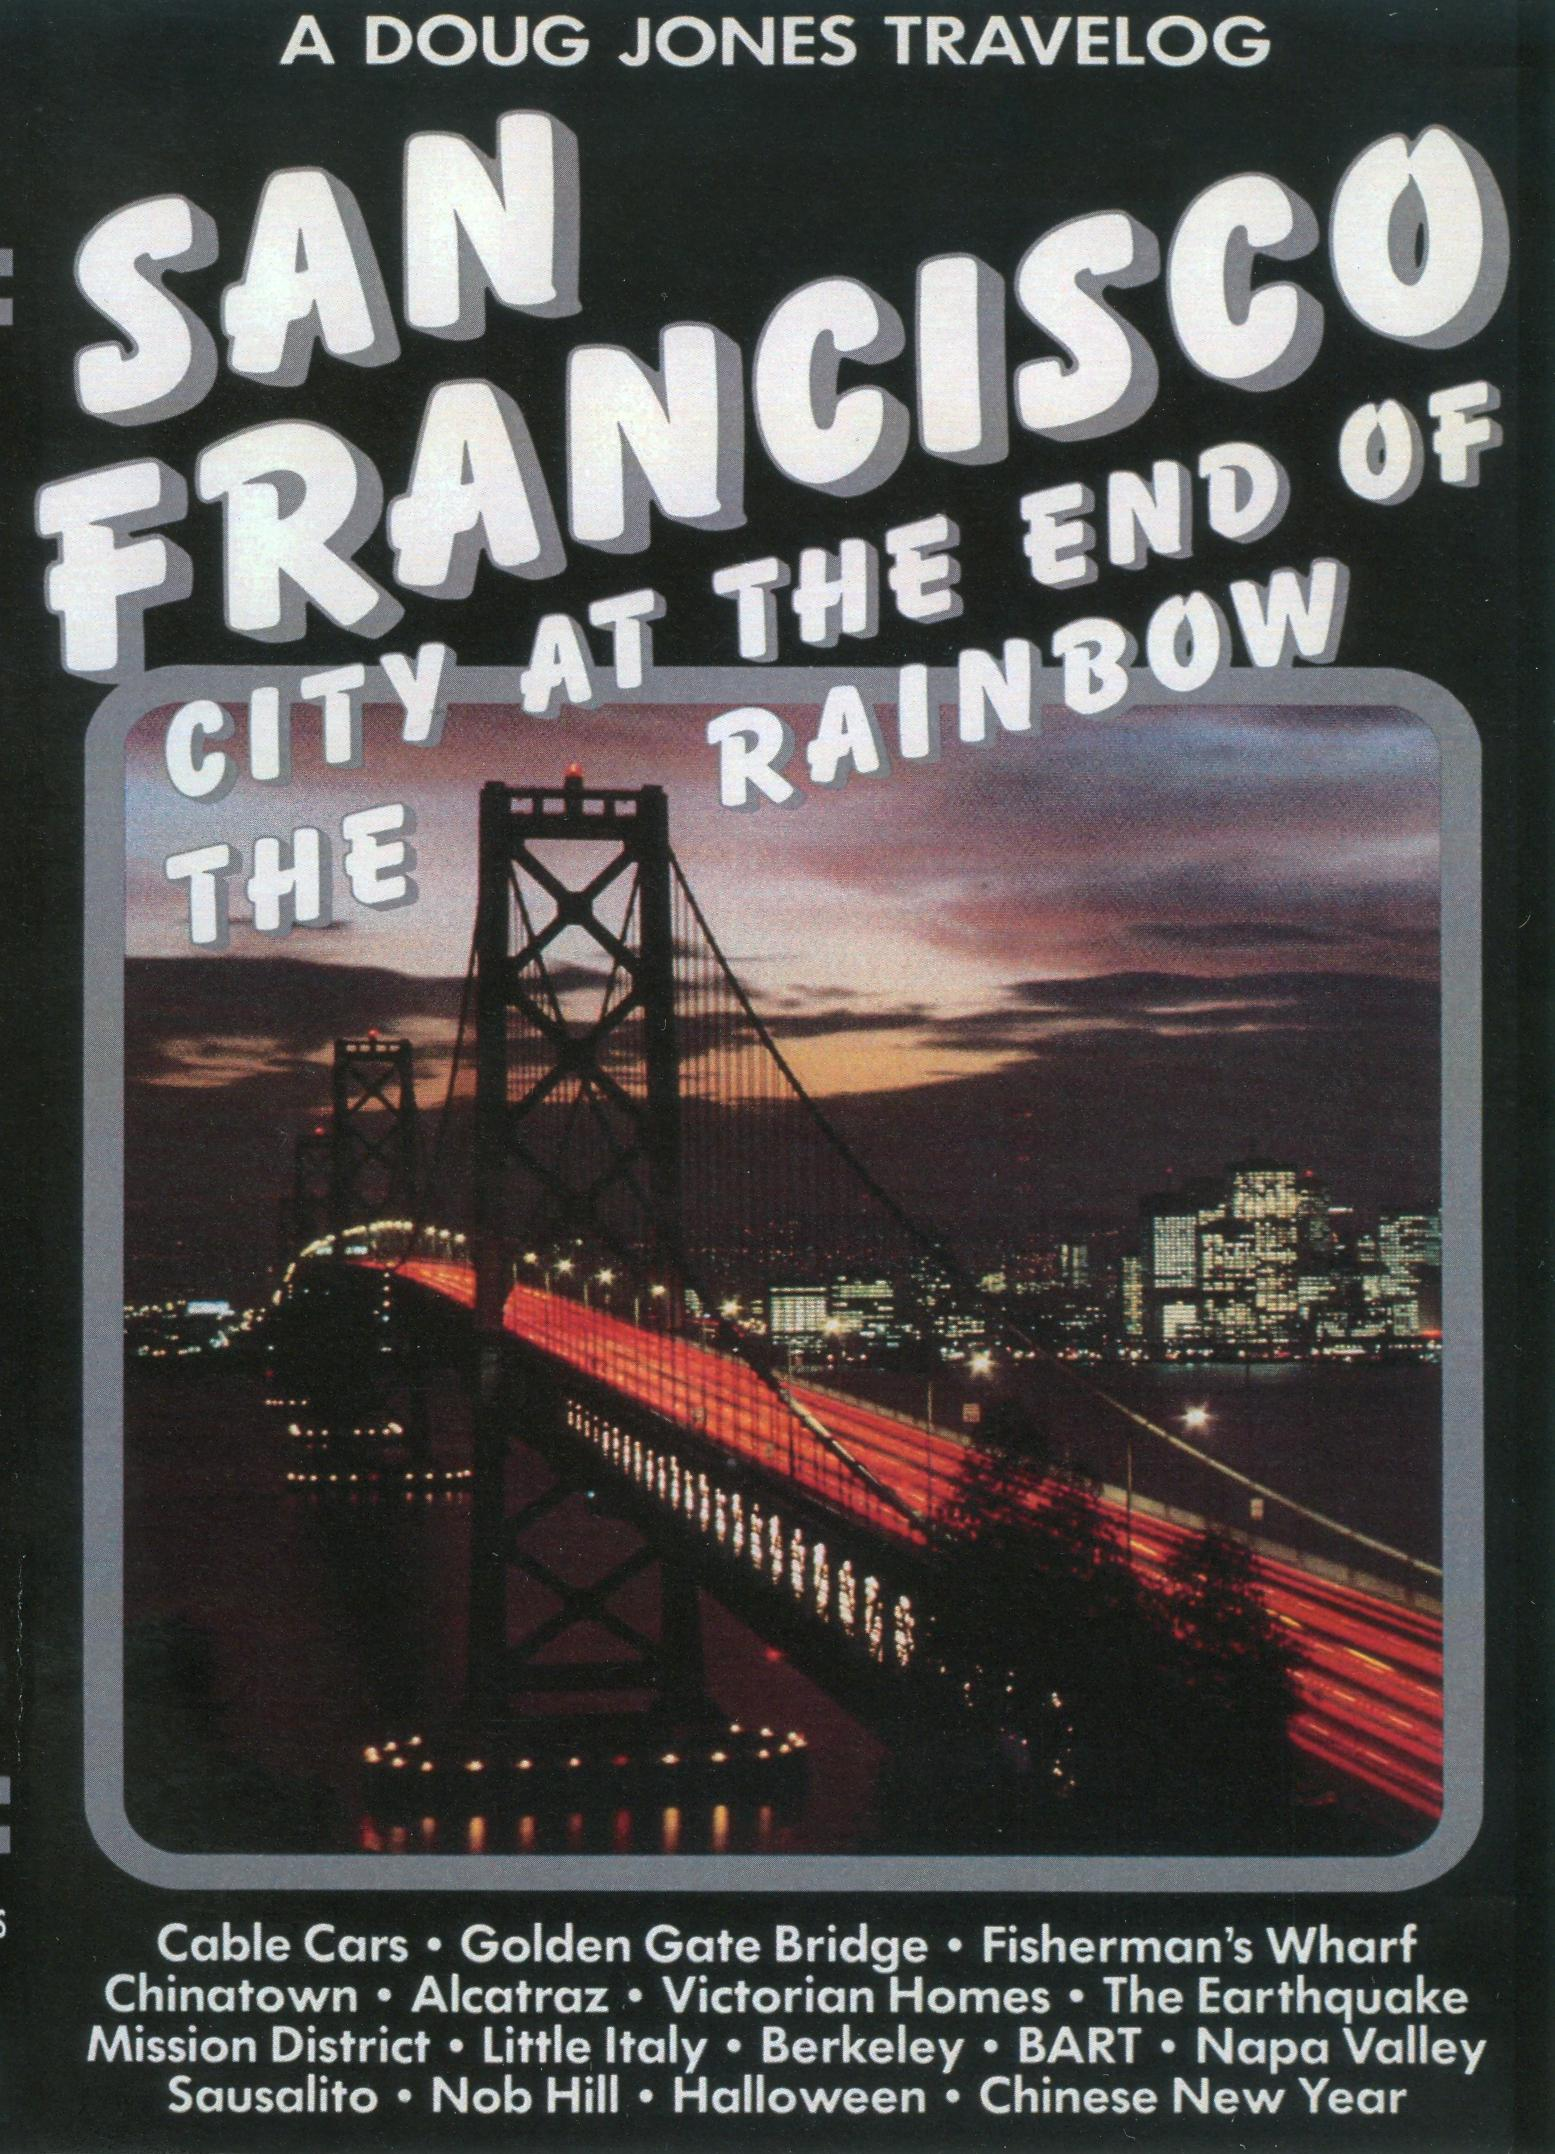 San Francisco: City at the End of the Rainbow